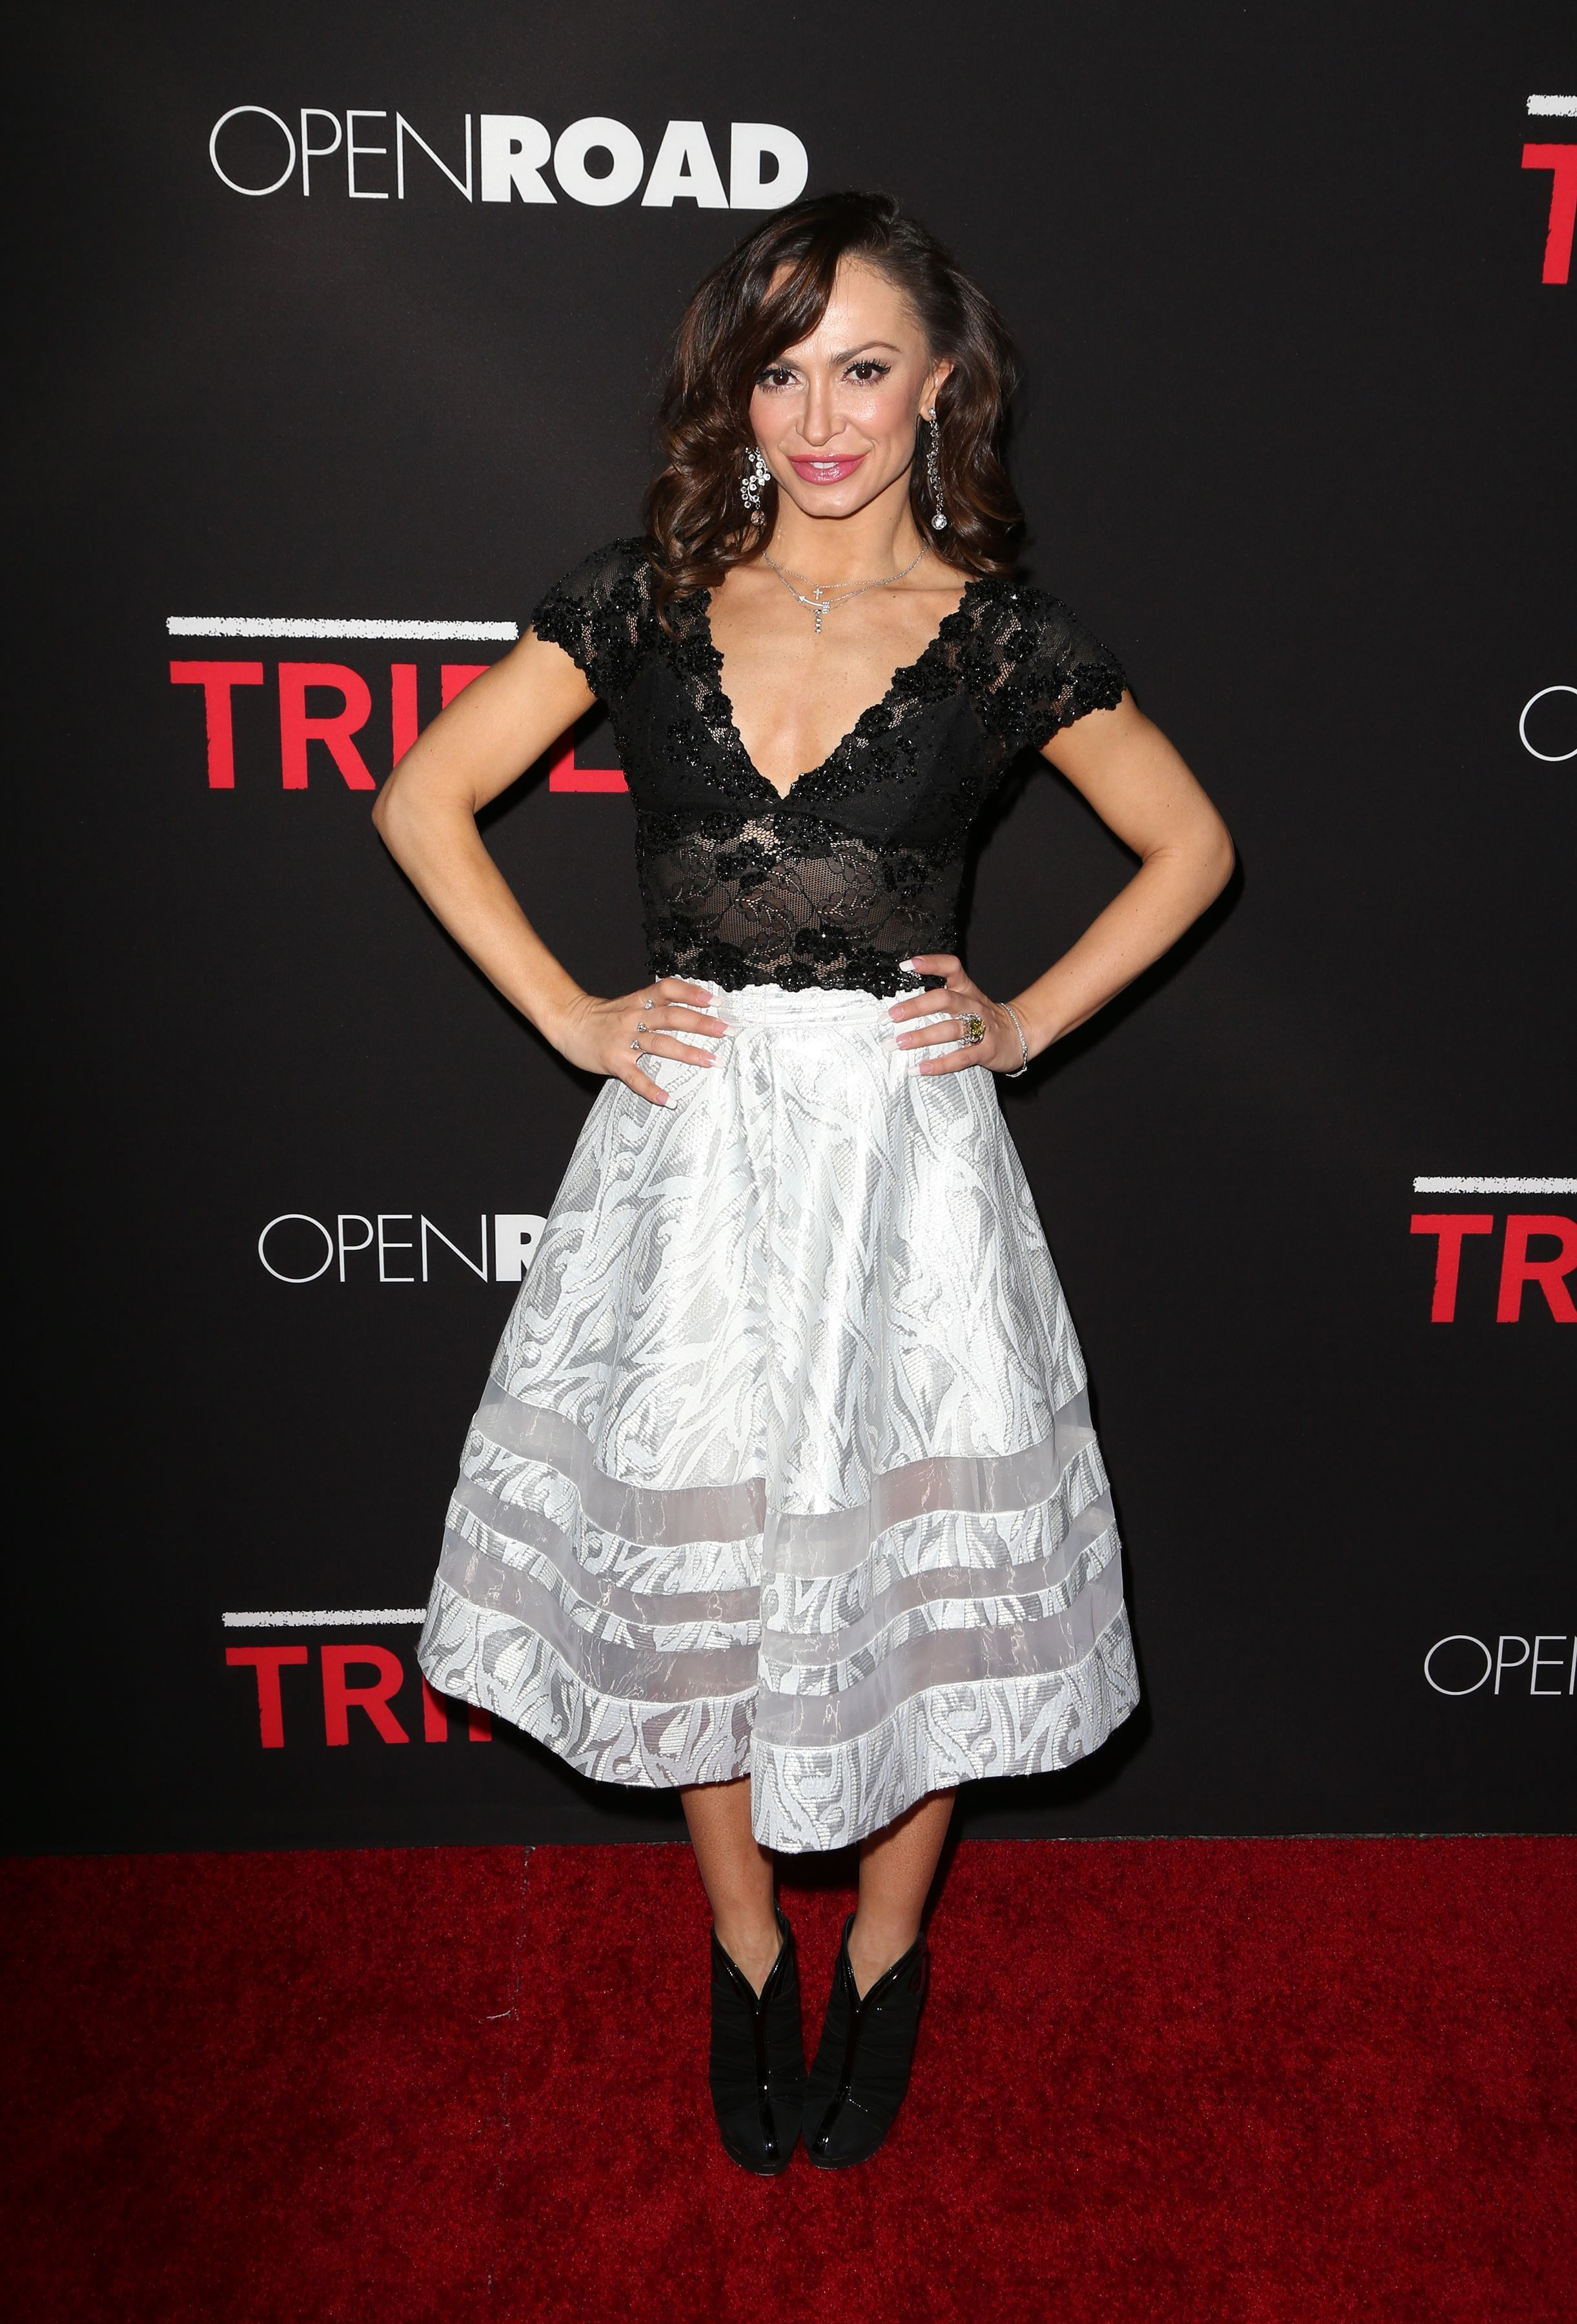 'Dancing With The Stars' Alumna Karina Smirnoff Welcomes Baby Boy - Fame10